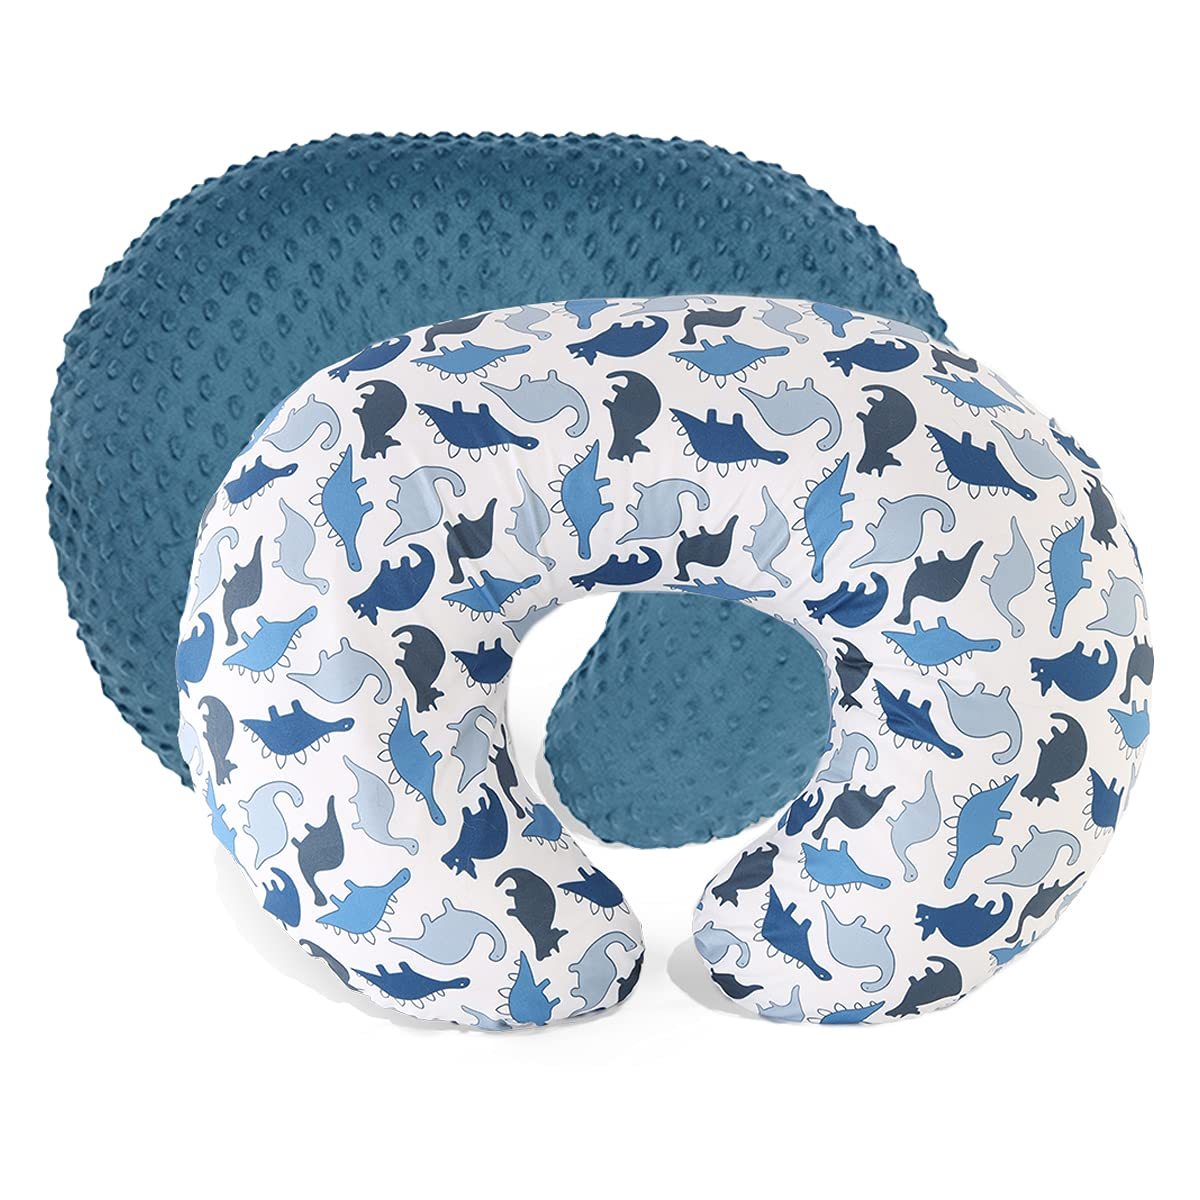 Love 2Mi Nursing Pillow Covers Minky Dots Breastfeeding and Bottle Feeding Nursing Pillow Case for Infant Baby Boy Girl Breathable and Soft 2 Pack